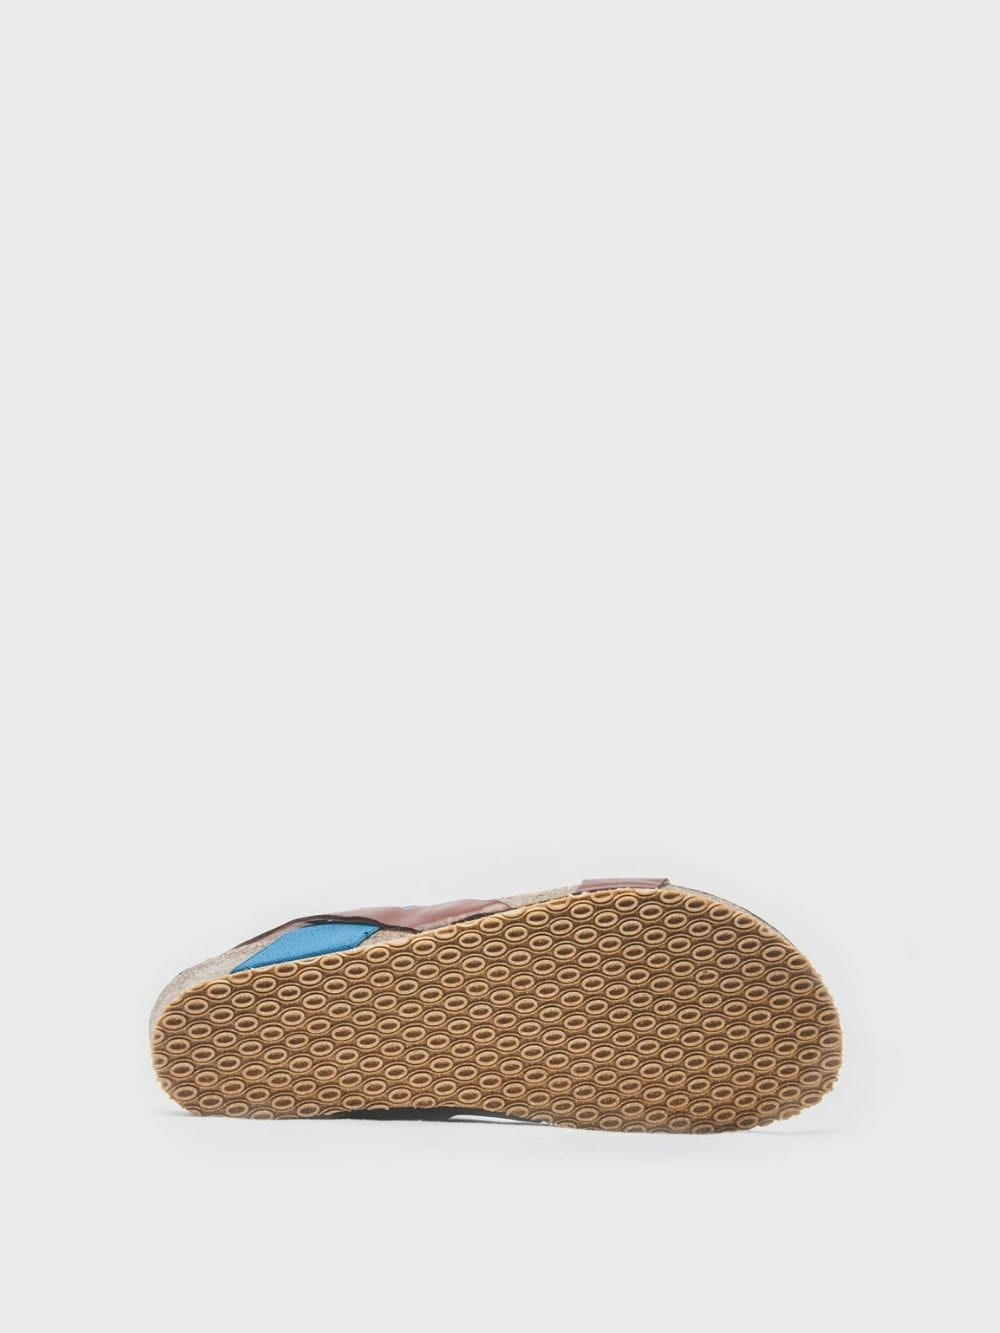 Sustainable shoes ecol gico-Soleil leather